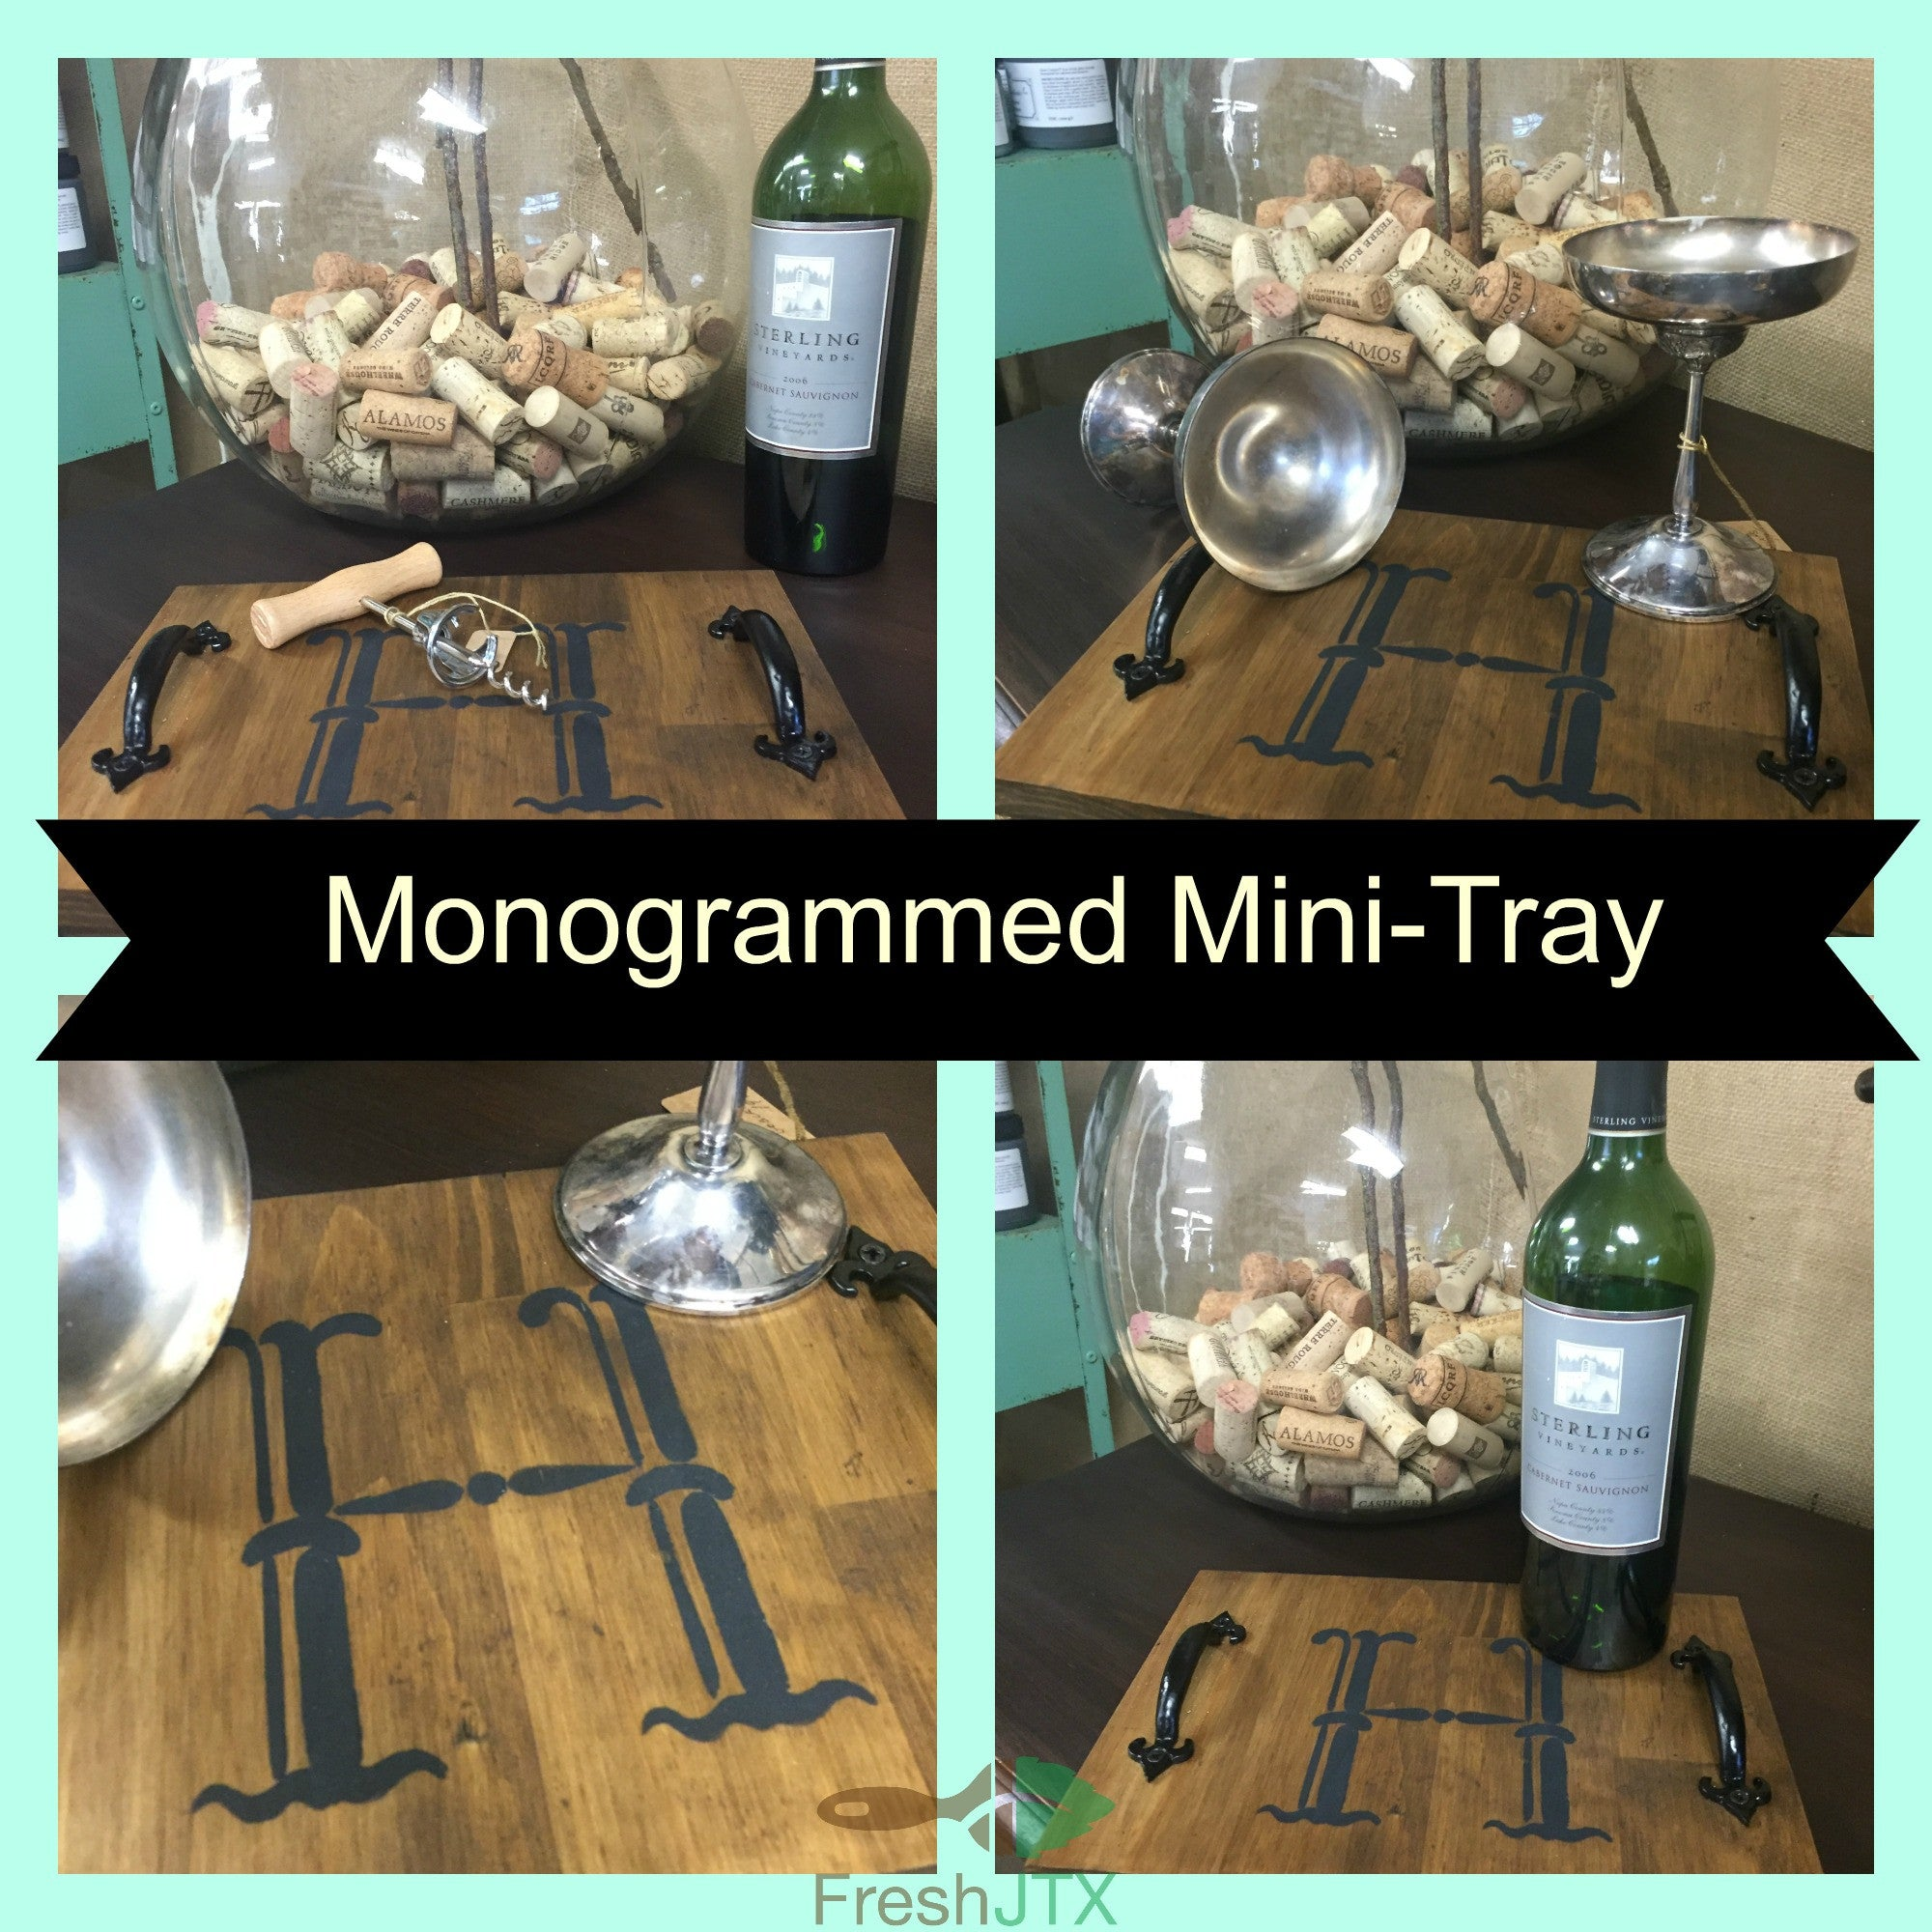 Monogrammed Mini-Tray Workshop--U Schedule It!